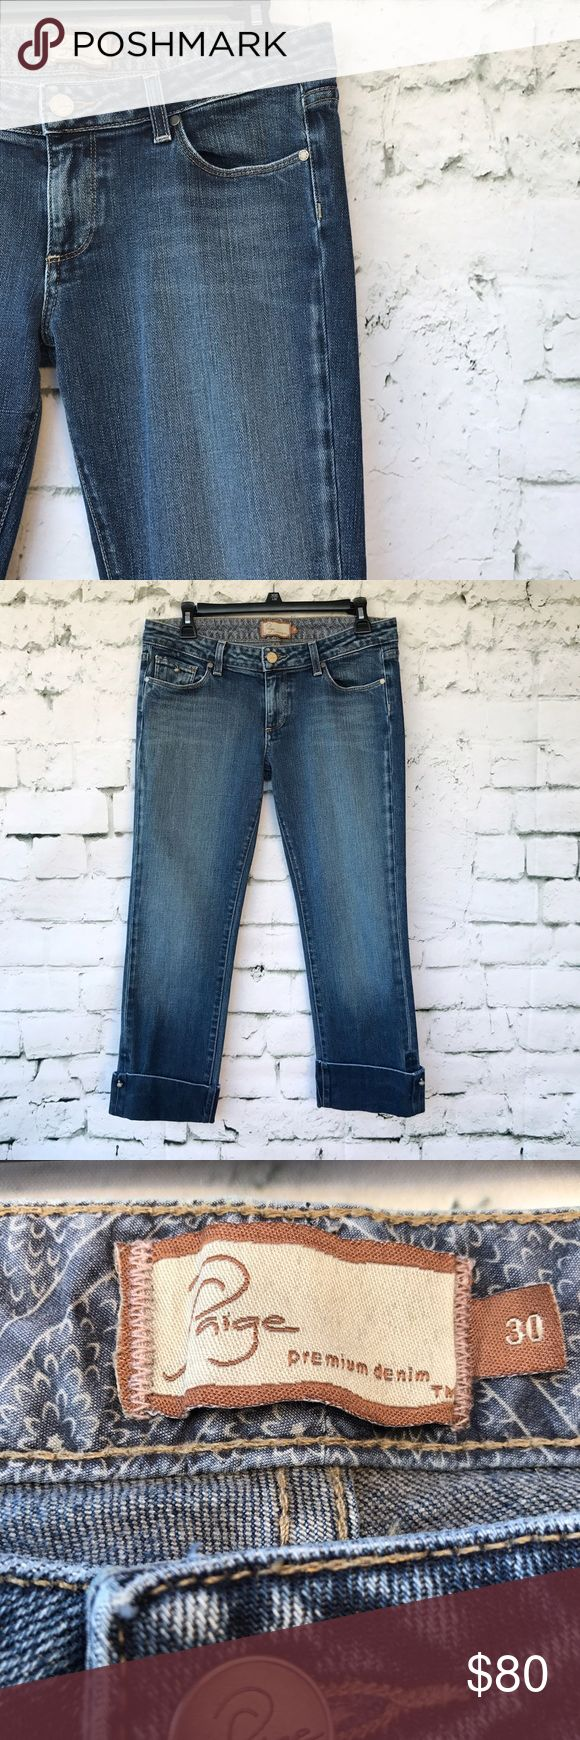 Paige Premium Denim Curson Capri Jeans Paige Premium Denim Curson Capri Jeans.  Please see pictures for material and measurements.  Small wear mark on right cuff of capri. PAIGE Pants Ankle & Cropped